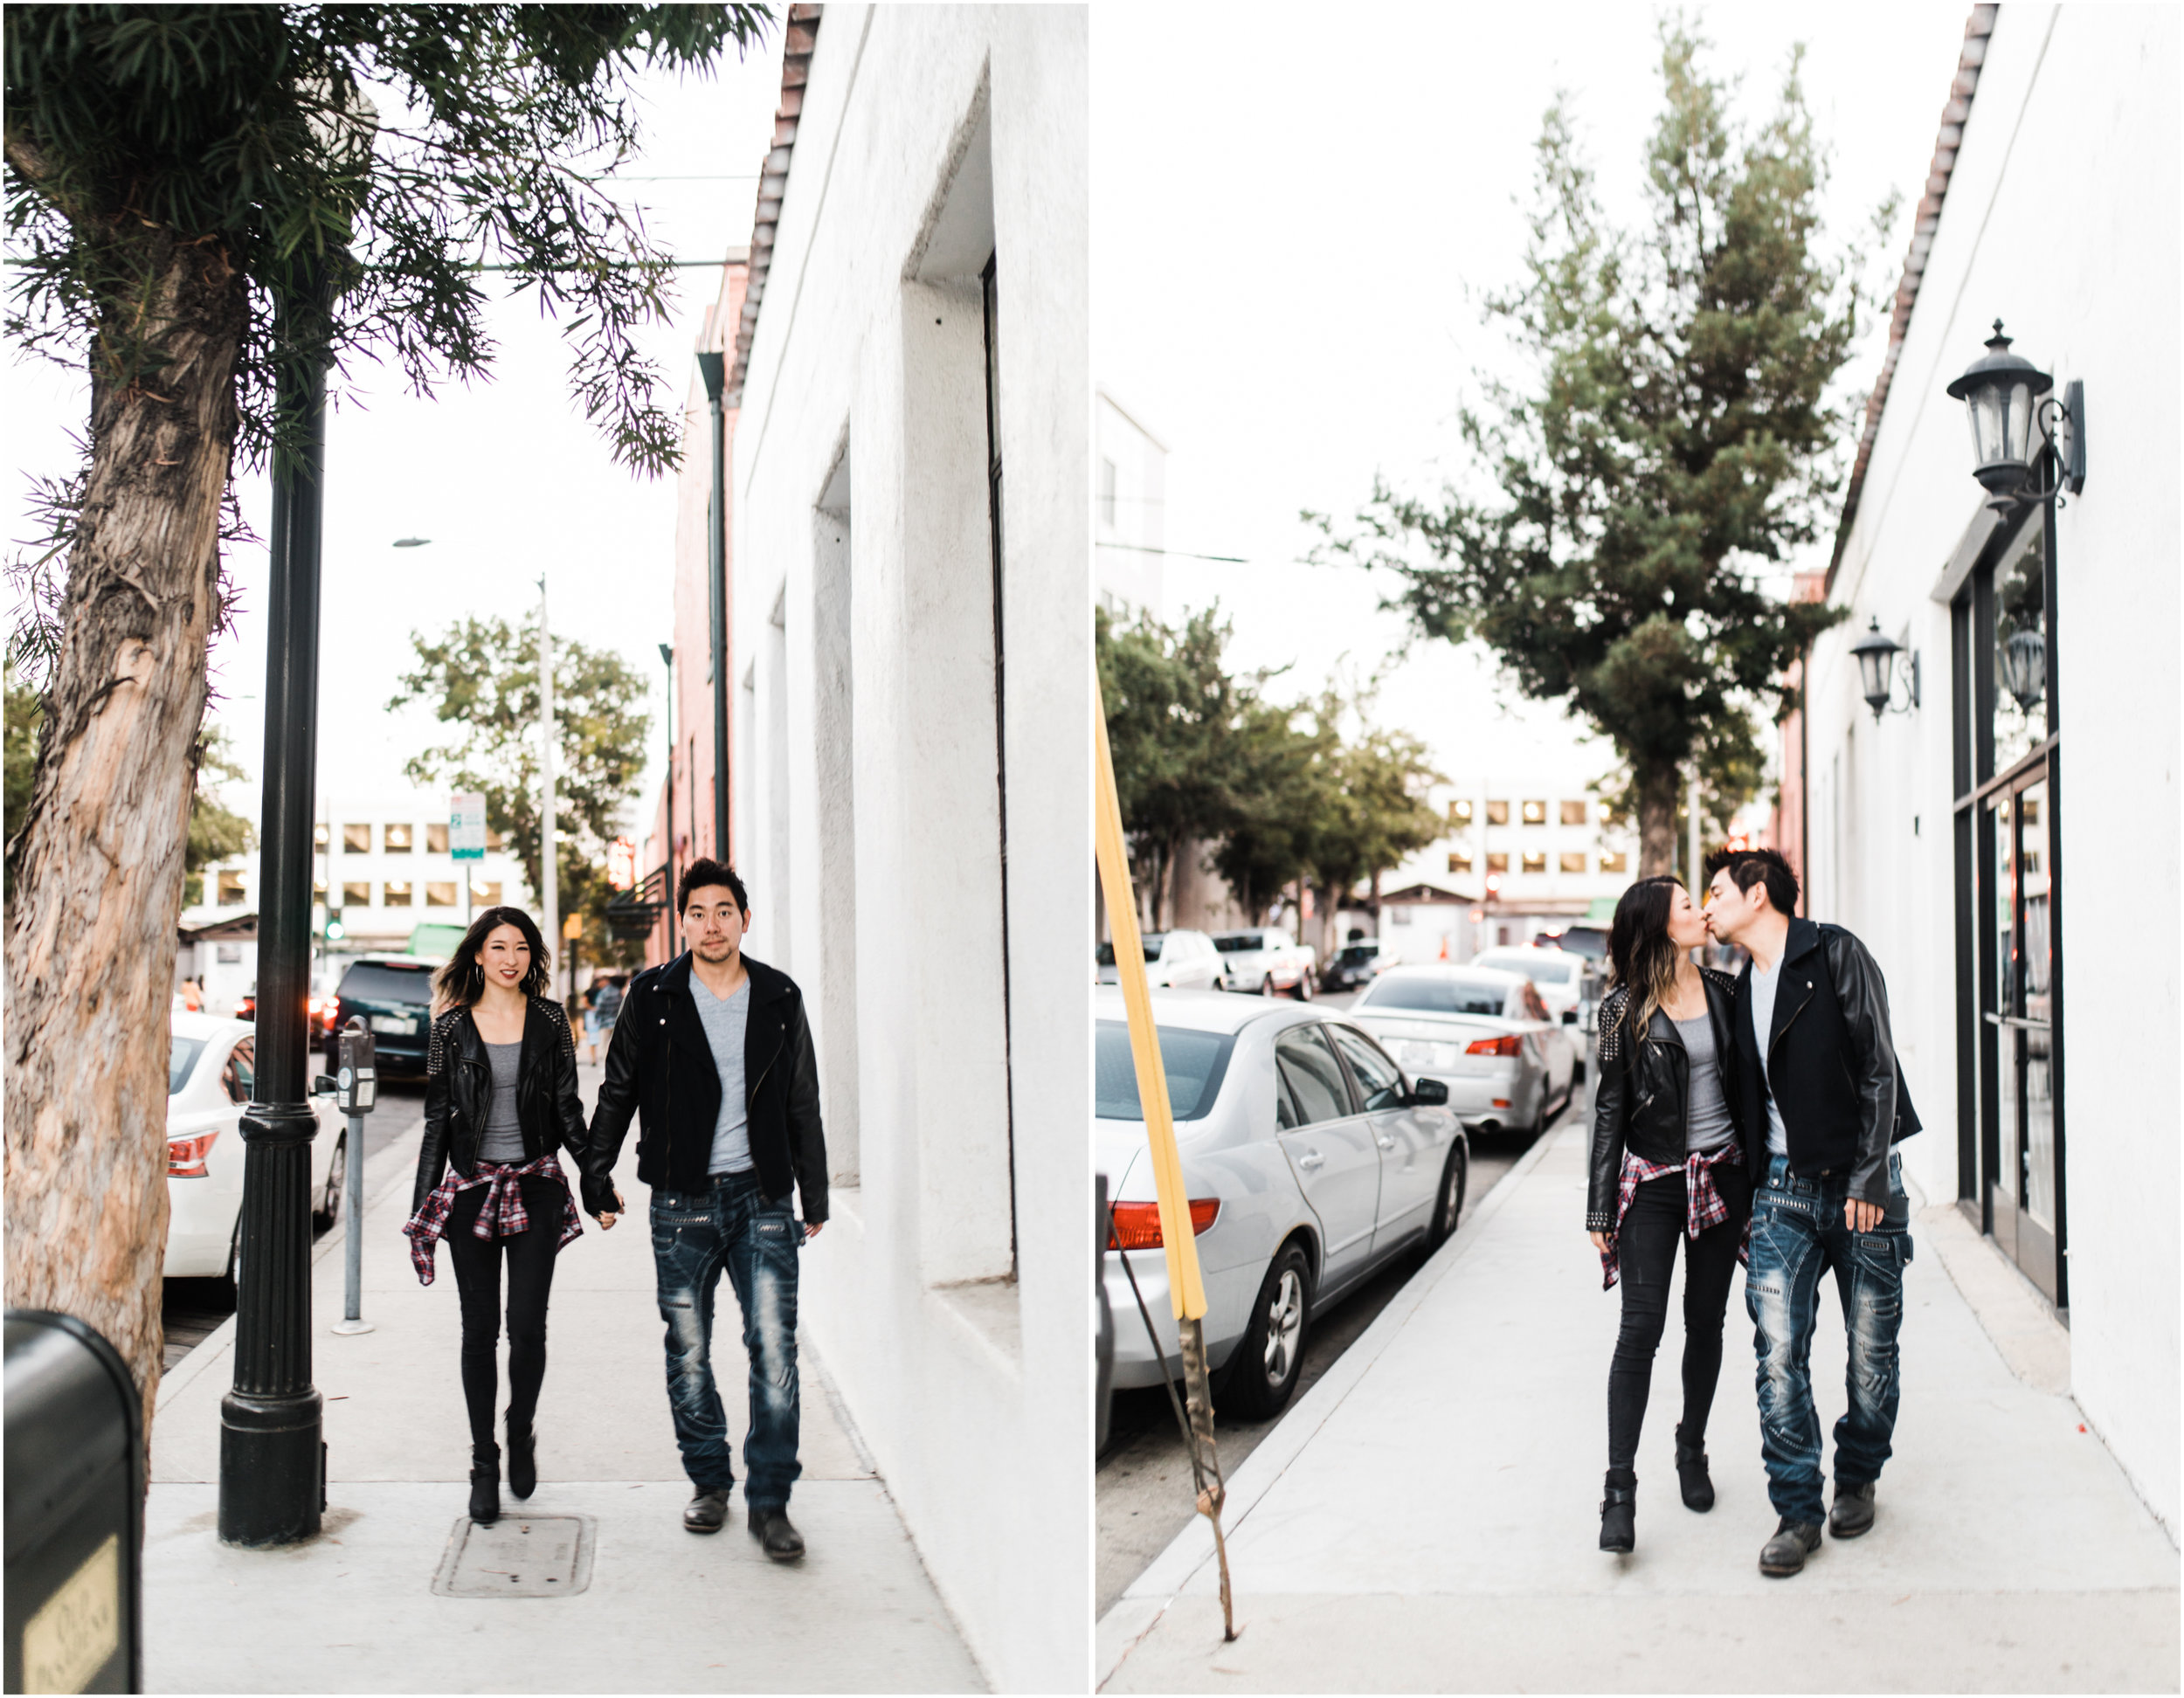 Sarah & Leonard - Old Town Pasadena, Pasadena, CA - Engagement Session | CRM Media | www.crm-media.com